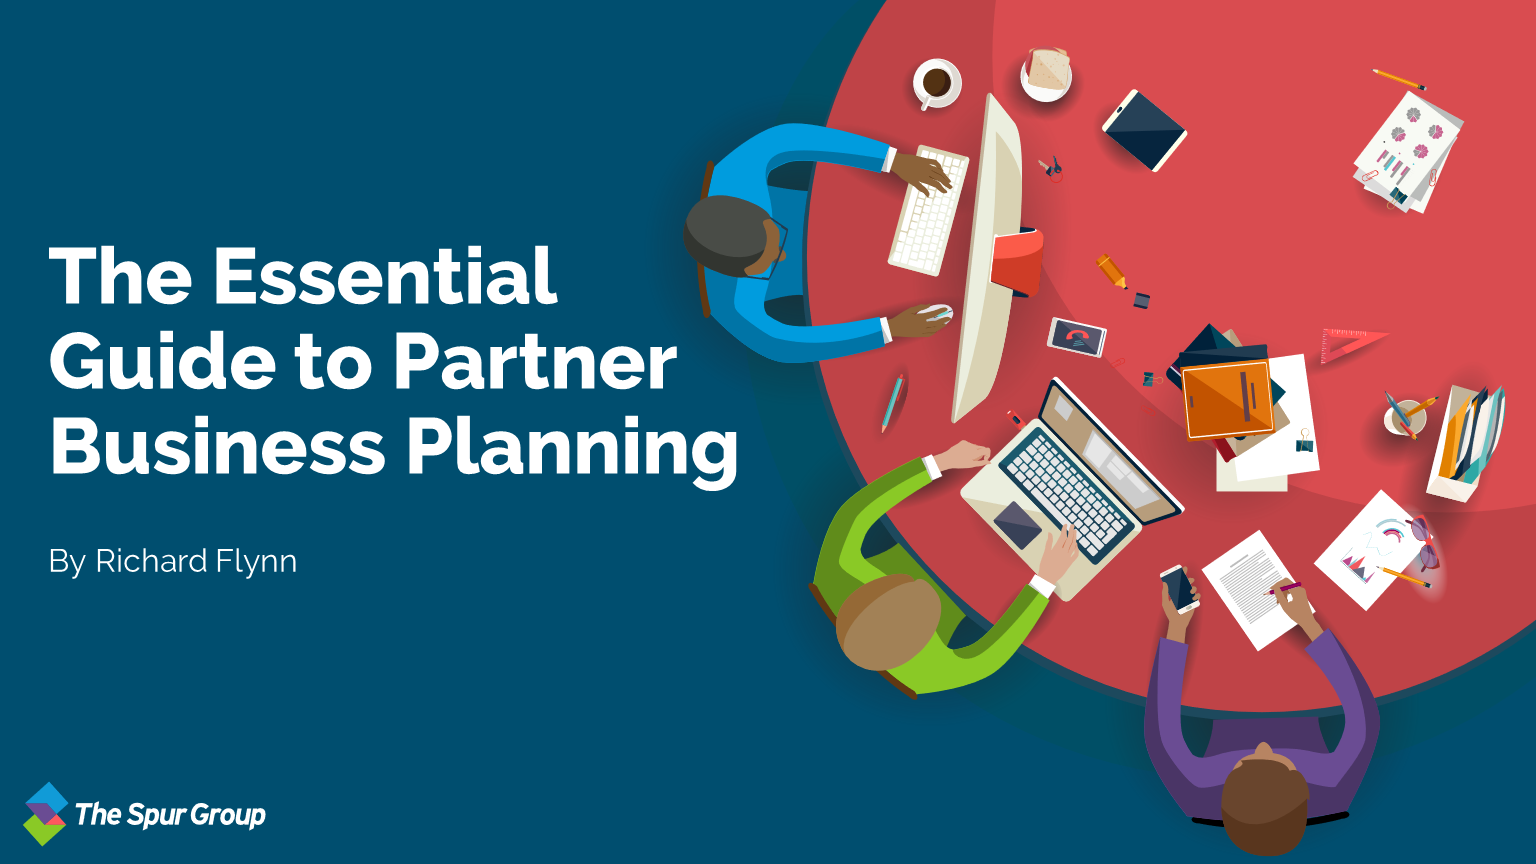 The Essential Guide to Partner Business Planning